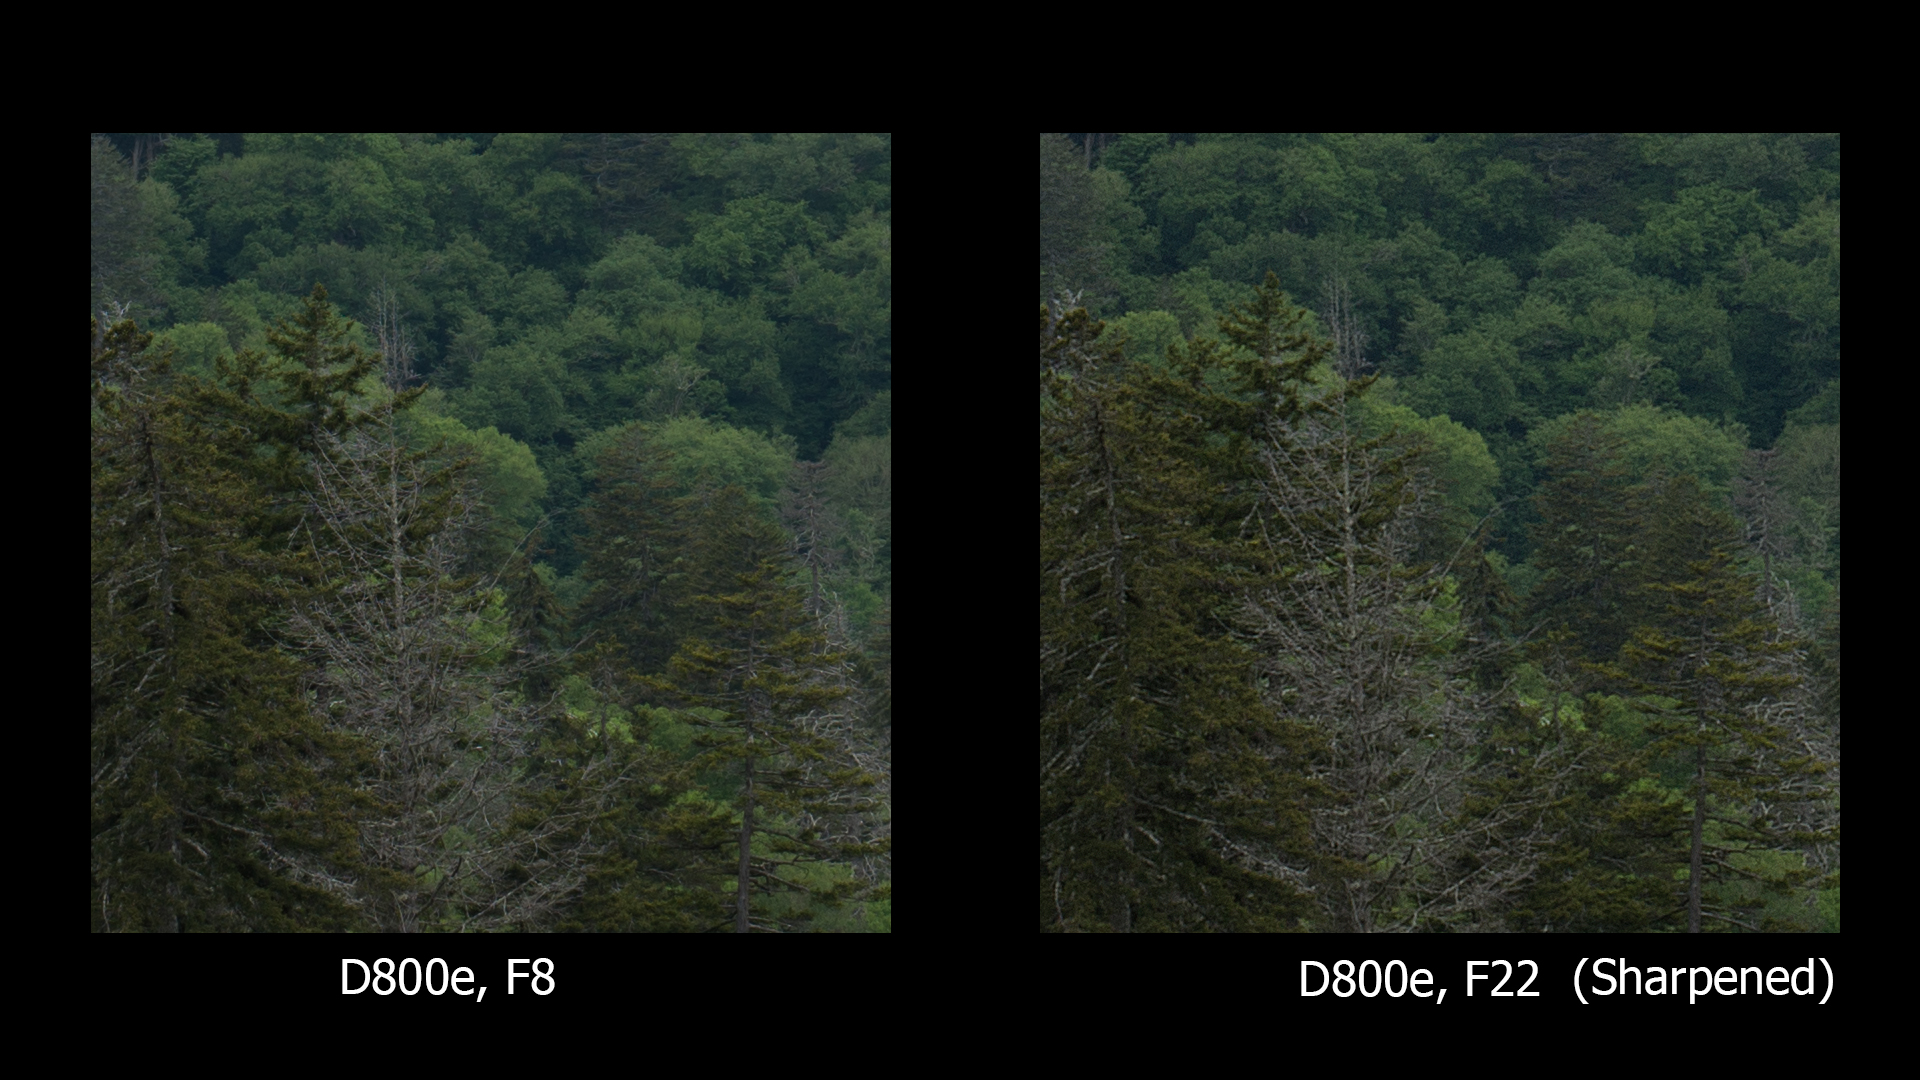 D800e, F8 and F22, ONLY F22 sharpened